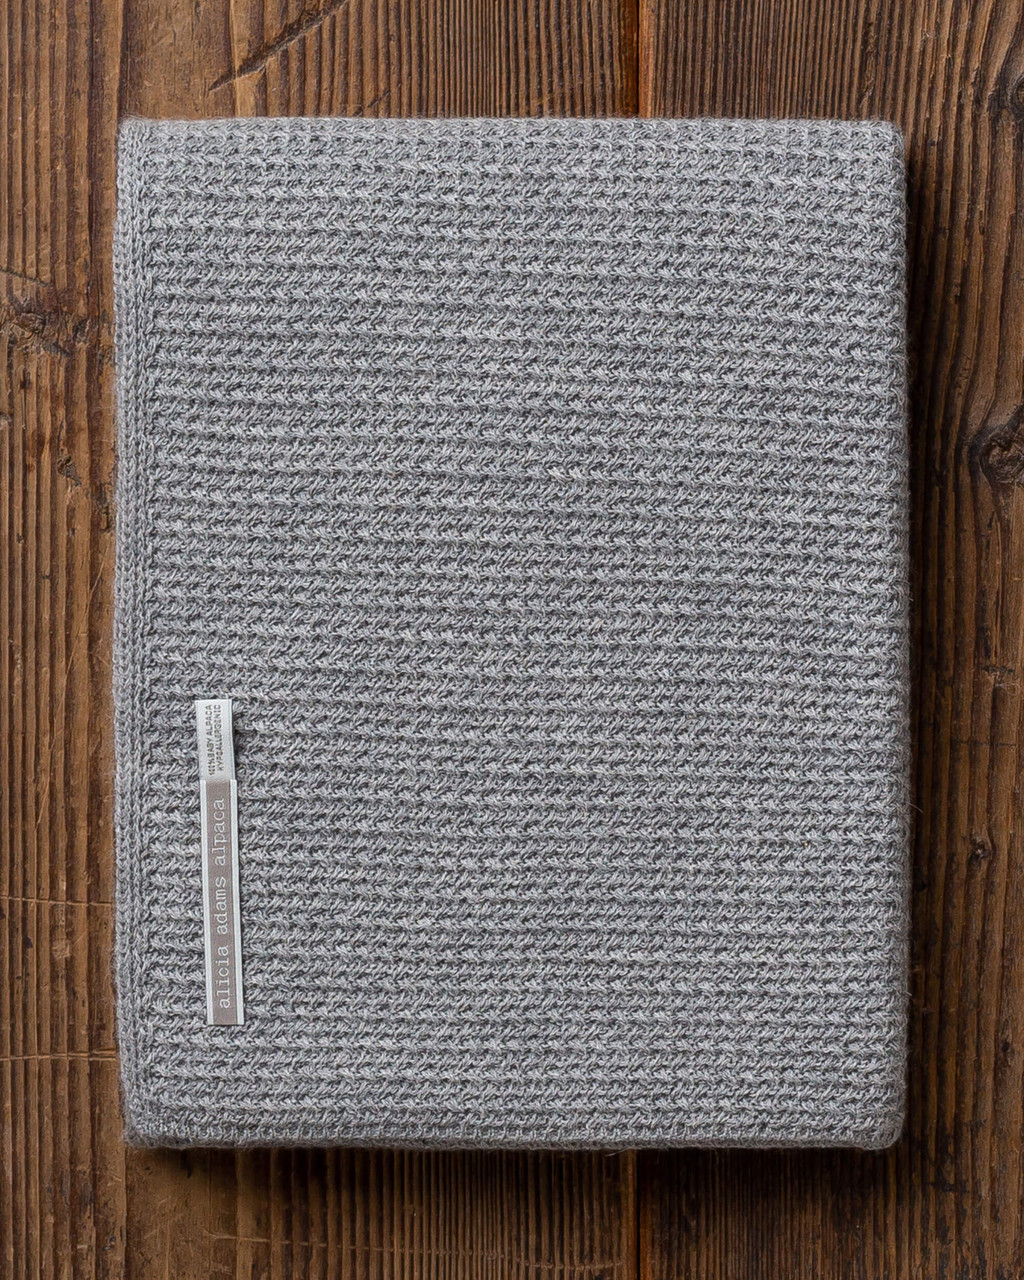 Alicia Adams Alpaca Zuma Baby Blanket, baby shower gift, best baby gift, alpaca vs cashmere, light grey alpaca baby blanket